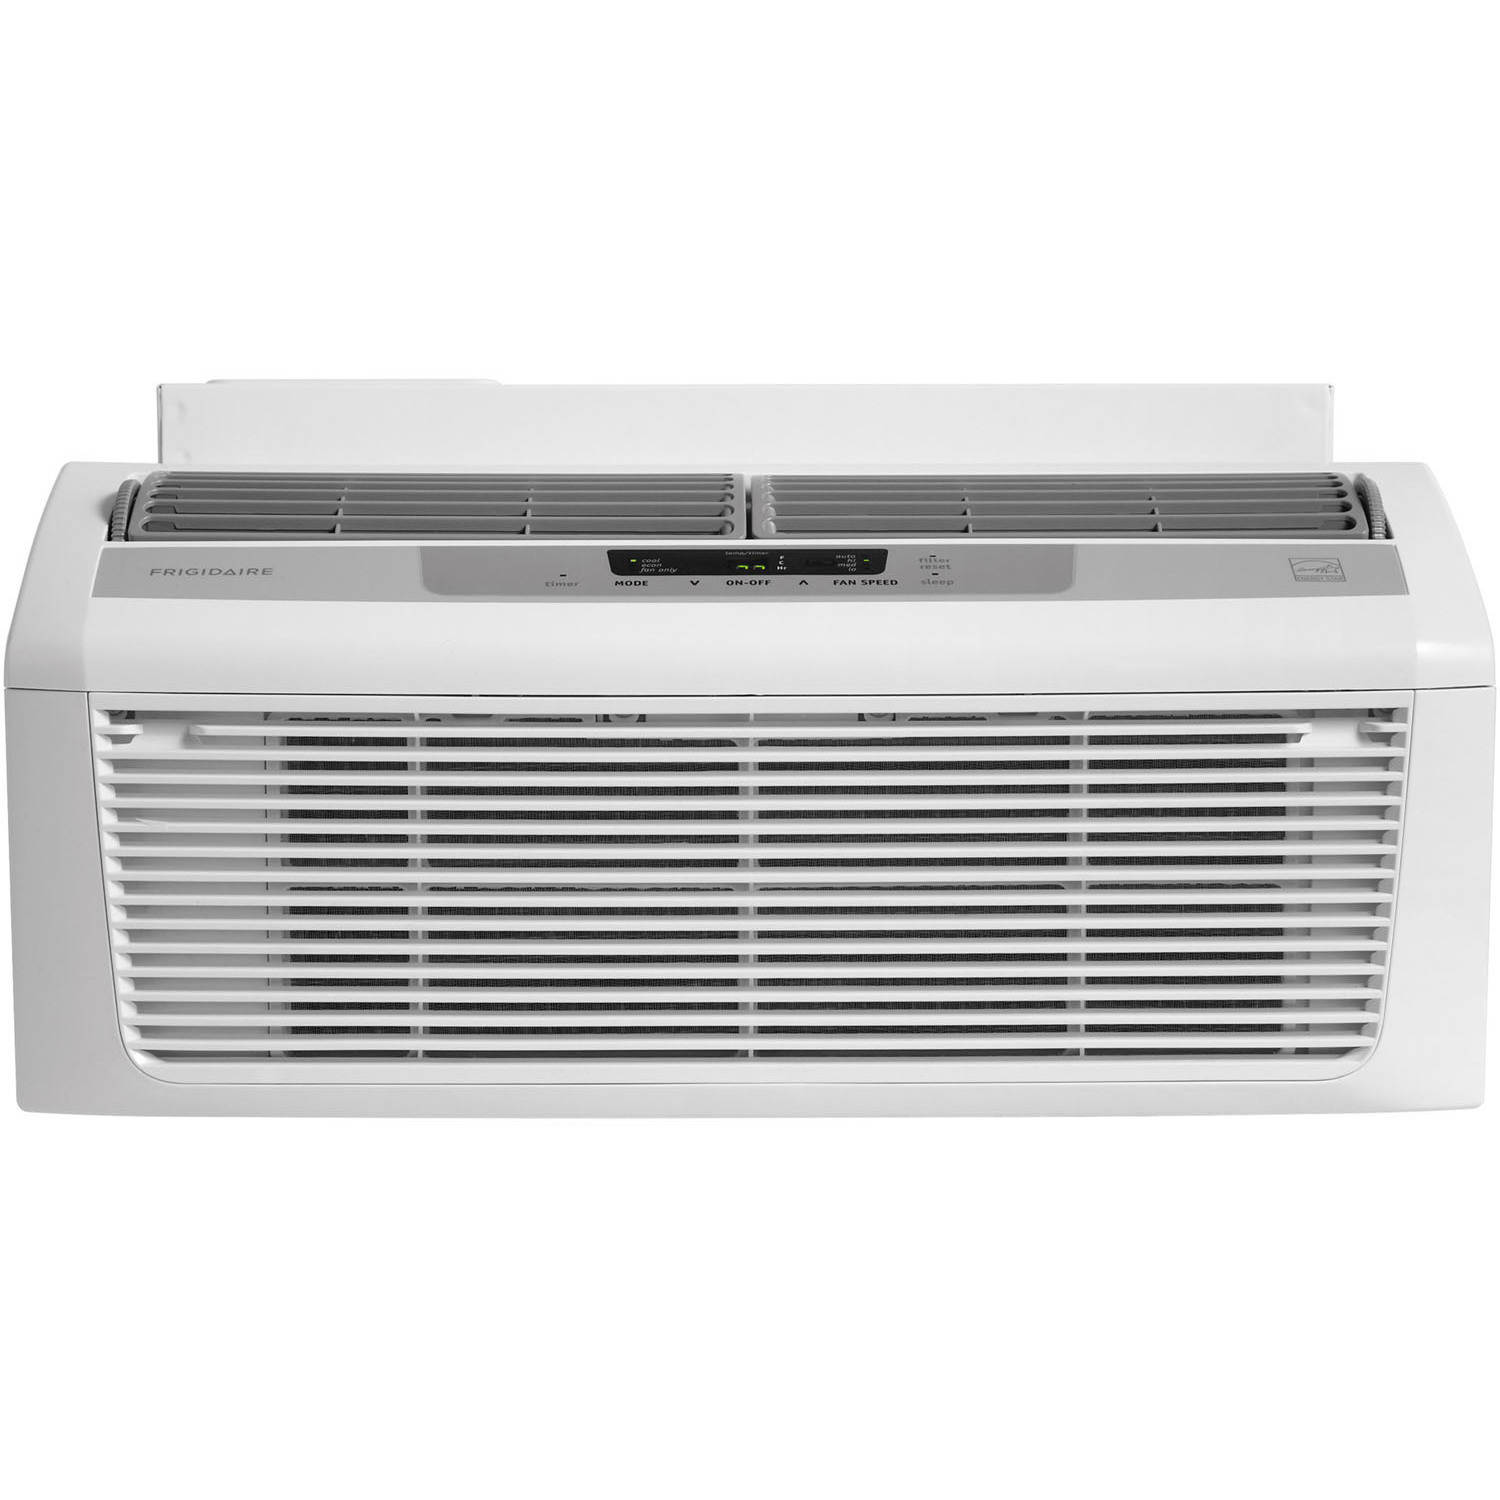 eaf22b93 59fe 47d8 866f 20ce03d03e8d_1.9cc022de876388d080aecabae1c4174c general electric 5,000 btu window air conditioner, 115v, ge  at aneh.co